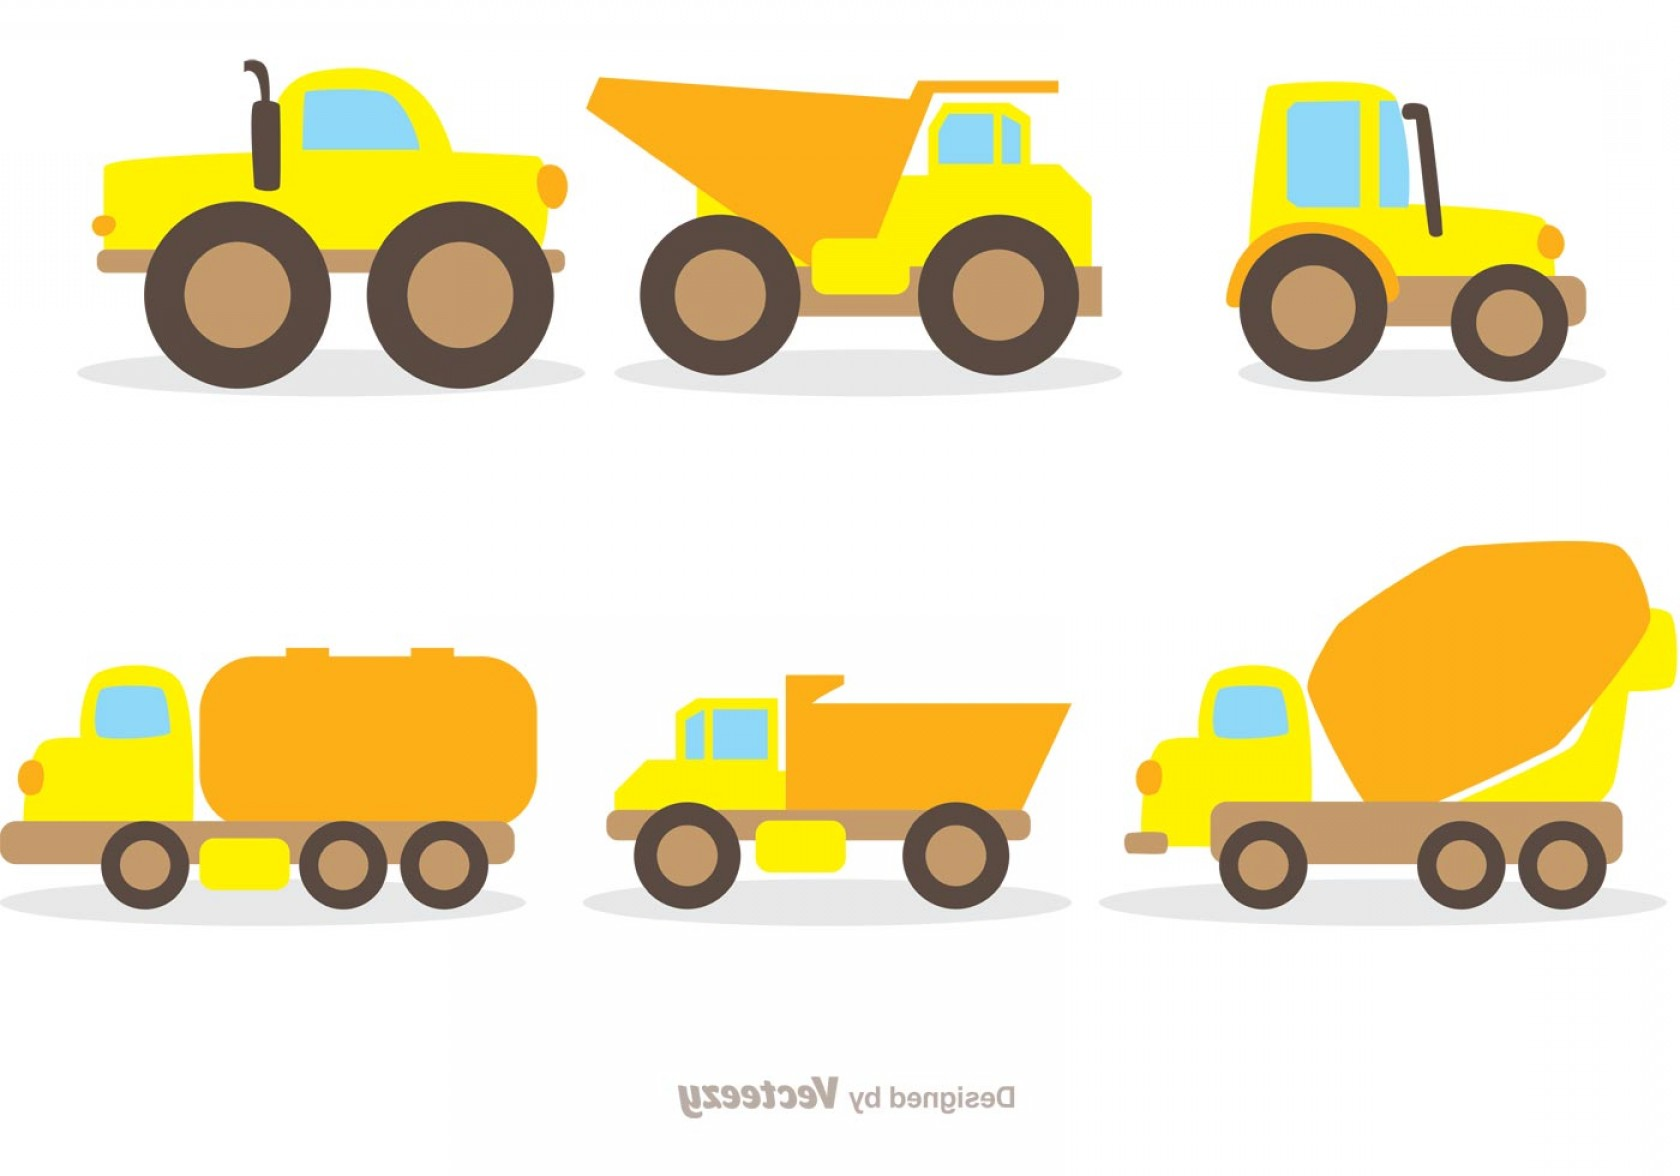 Tank Trucks Vector Art: Flat Dump Trucks Vector Pack